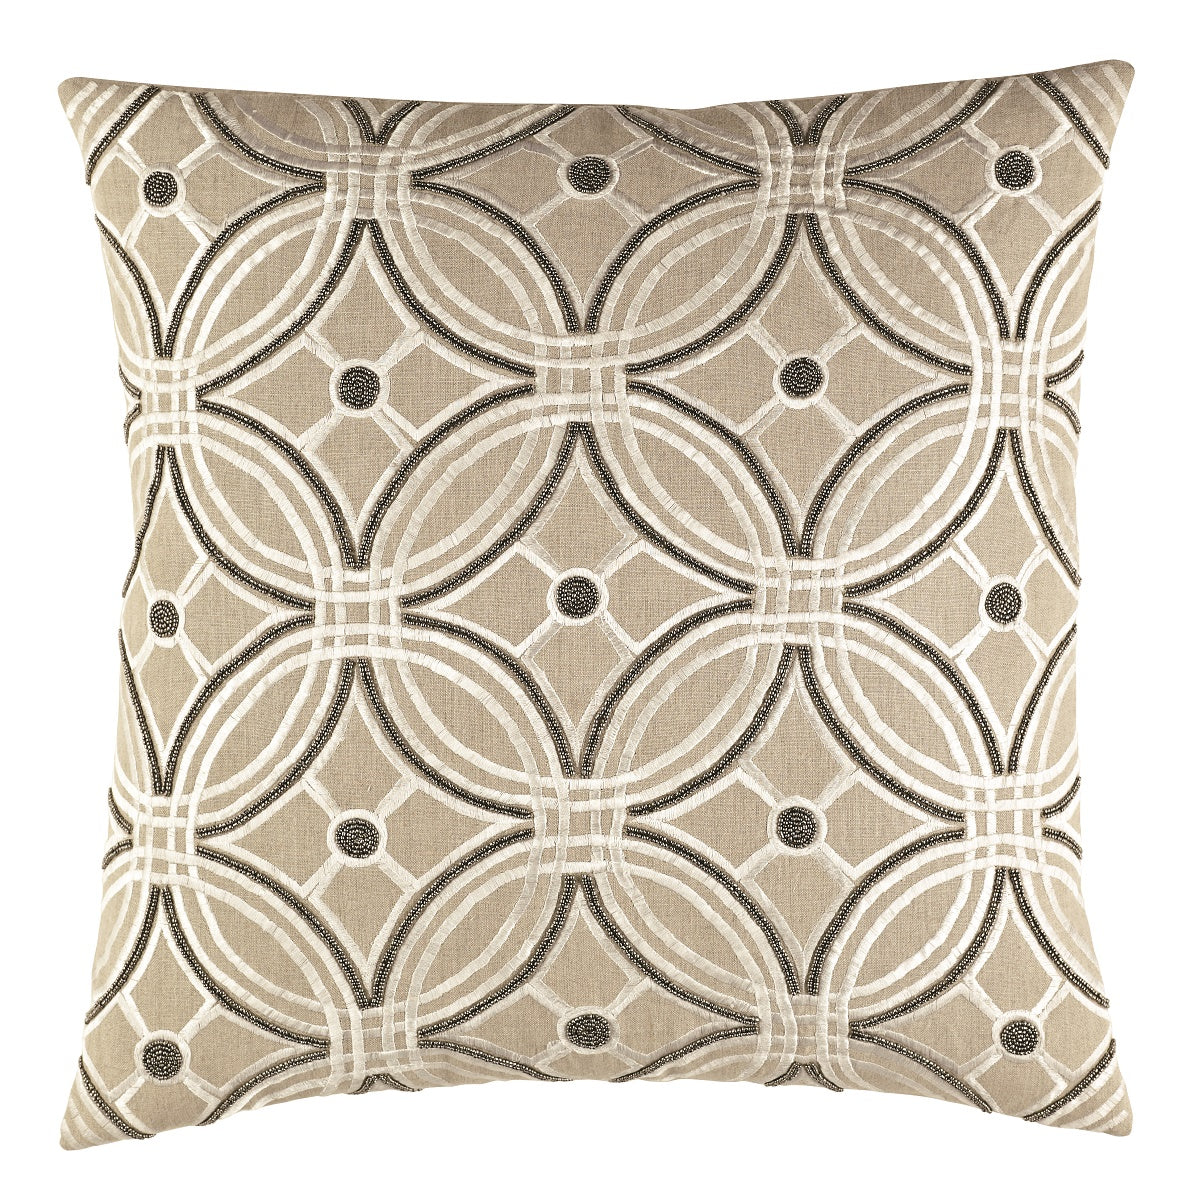 A modern decorative pillow with an embroidered pattern and bead work